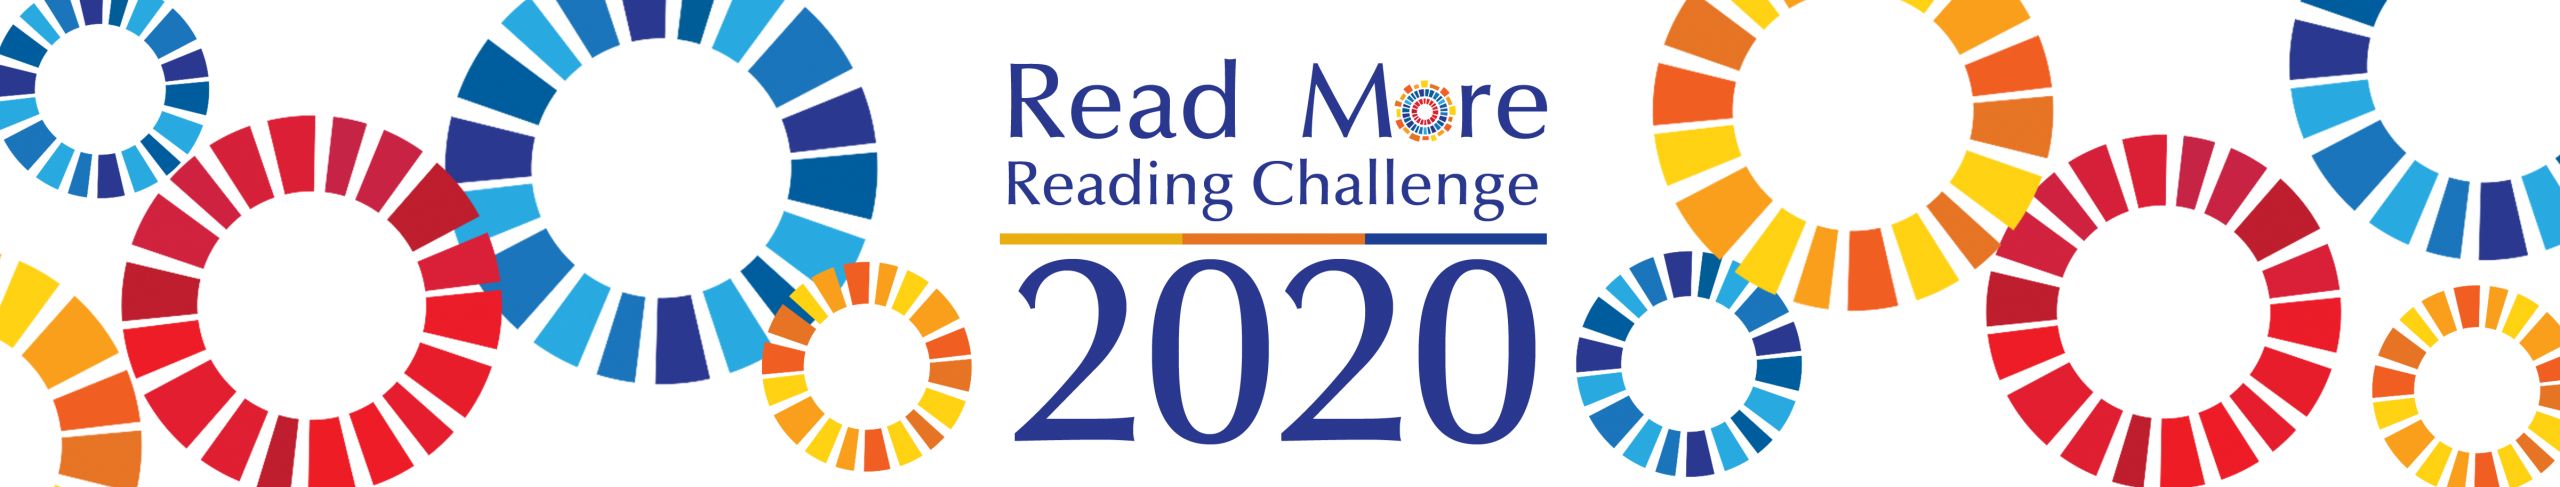 Read More 2020 Challenge header logo